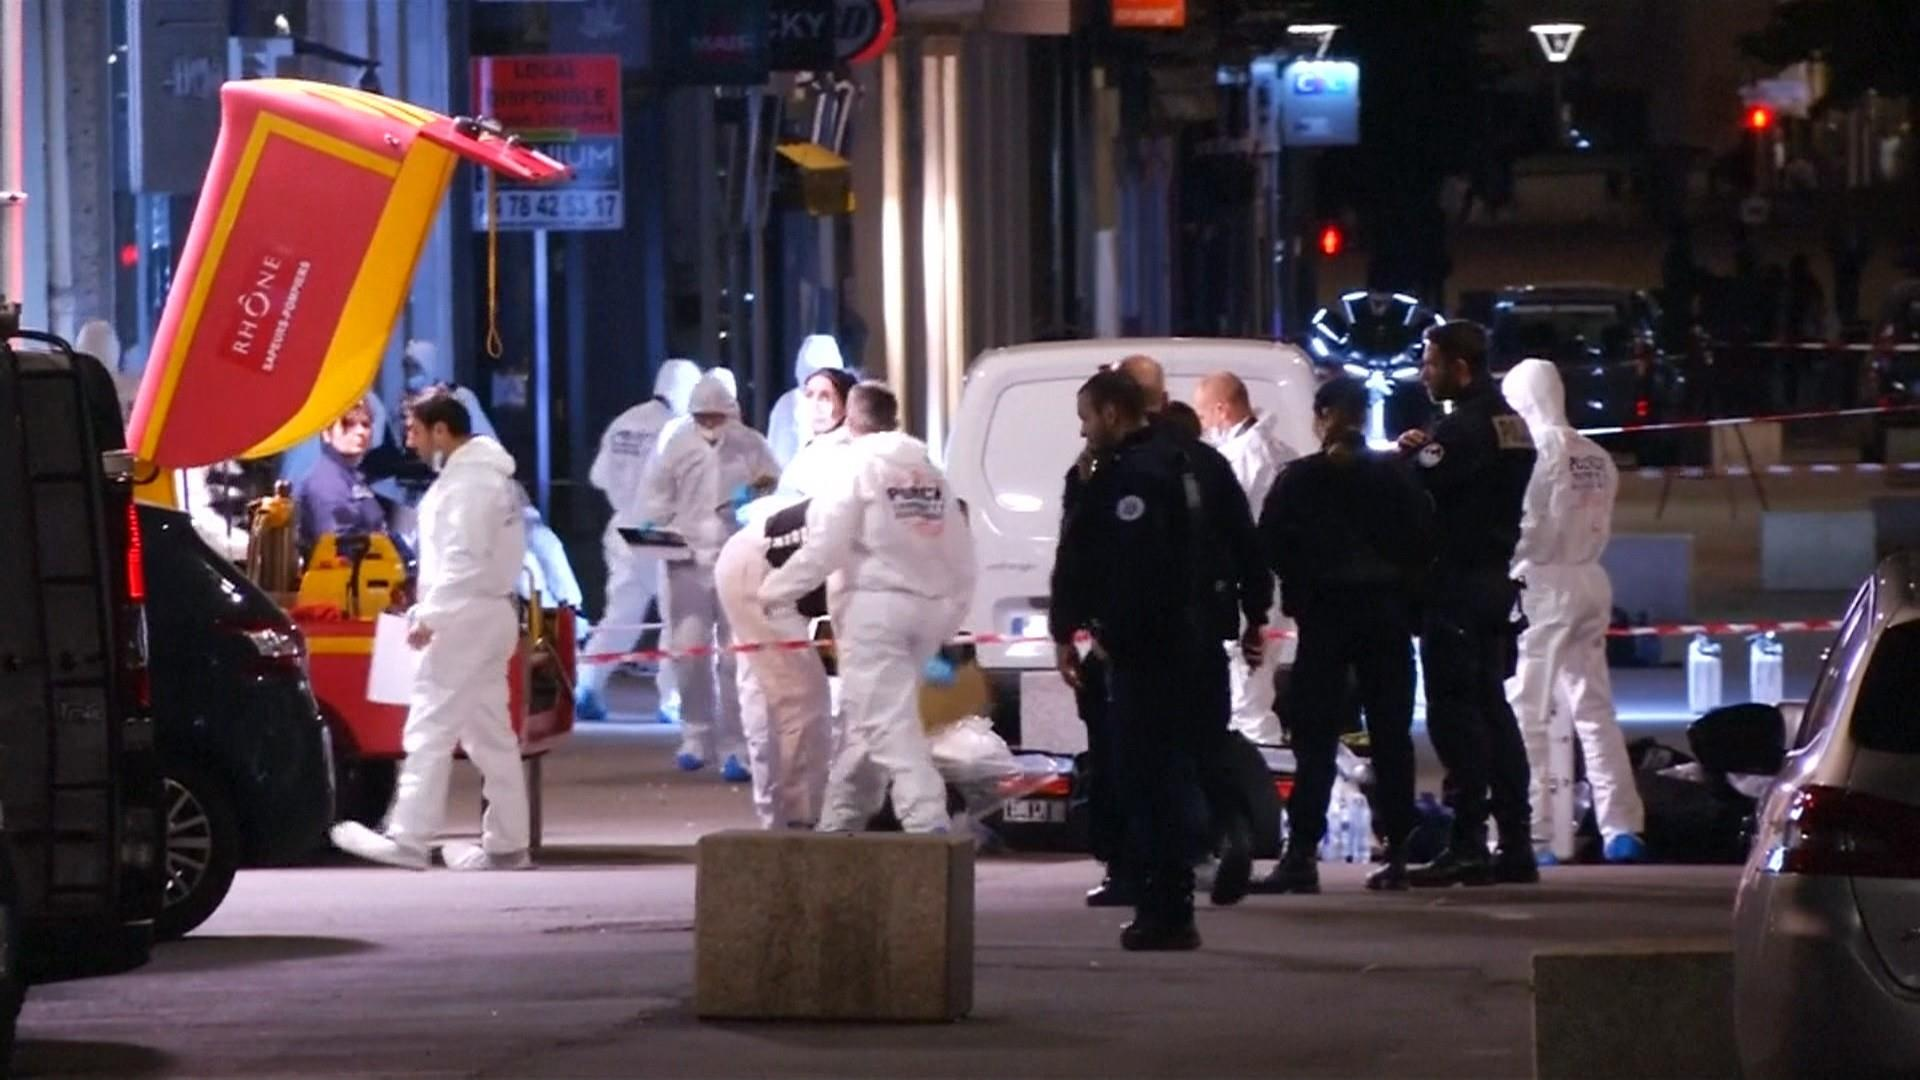 Manhunt underway after bomb attack injures 13 in Lyon, France